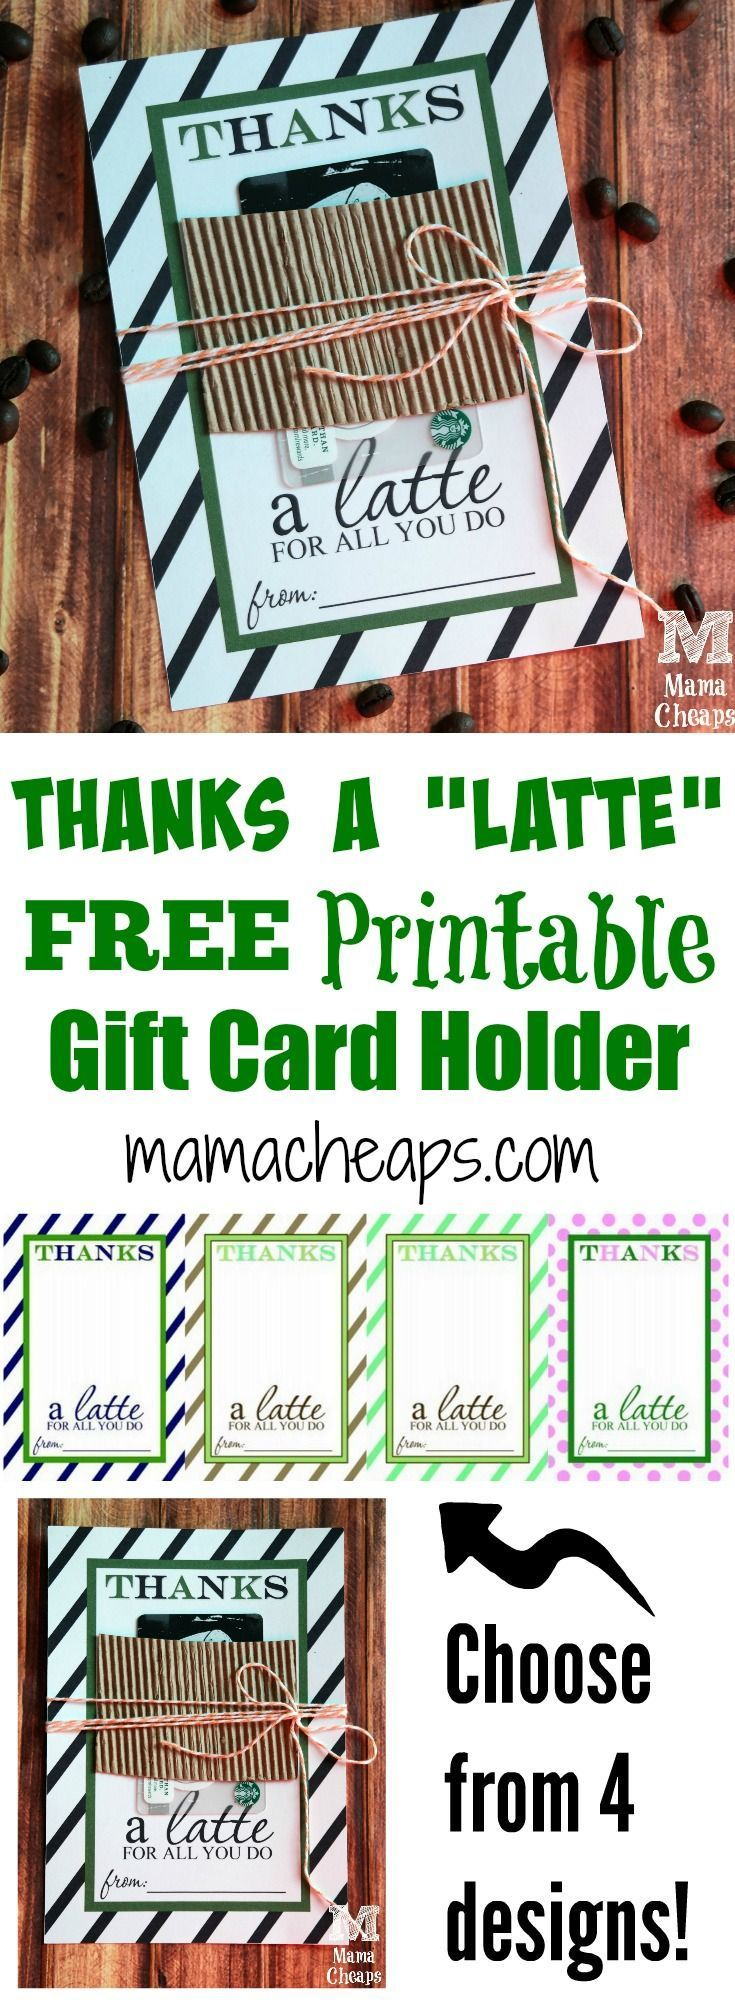 Thanks a Latte FREE Printable Gift Card Holder Teacher Gift